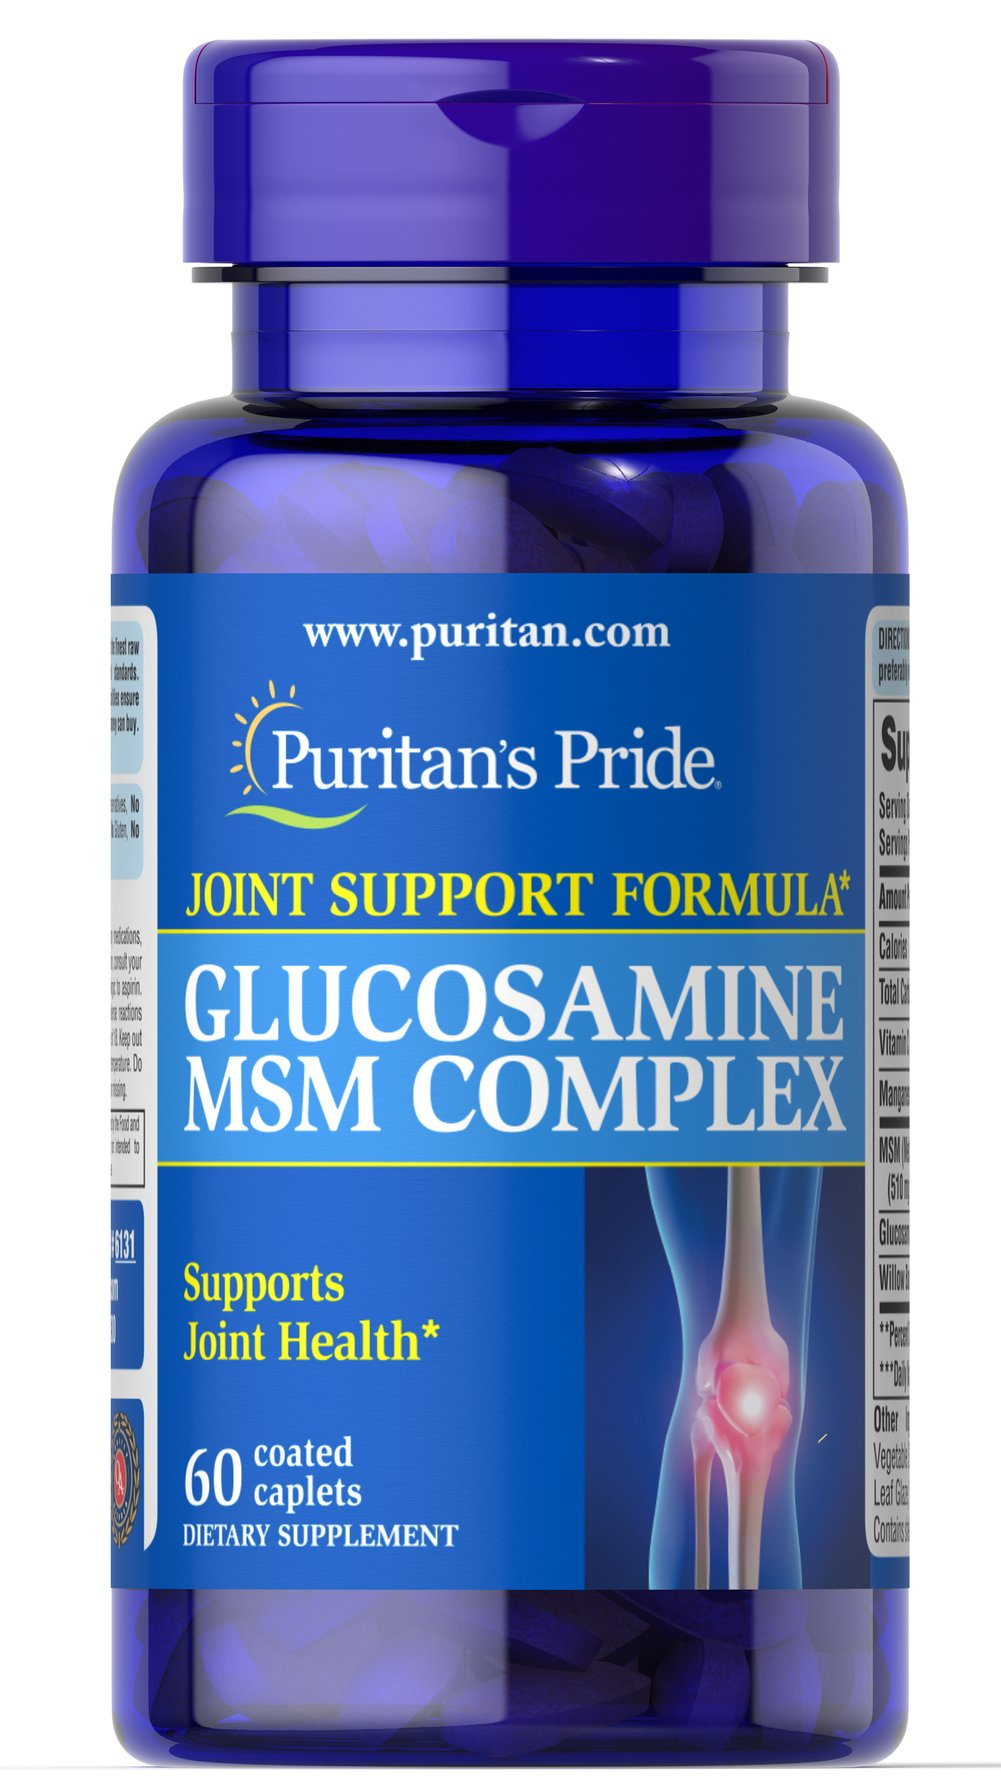 Glucosamine MSM Complex 500mg/333 mg <p>Two key ingredients in one tablet? Our Glucosamine MSM Complex is an excellent choice for anyone seeking a well-rounded formula containing two distinct joint support ingredients. Three tablets provide Glucosamine Sulfate (1500 mg), MSM (1000 mg), Ginger (100 mg), Vitamin C (60 mg), Manganese (5 mg) and White Willow (100 mg).</p>  <p>WARNING: Do not consume product if you have an allergy to shellfish.</p> 60 Caplets 500 mg/333 mg $9.